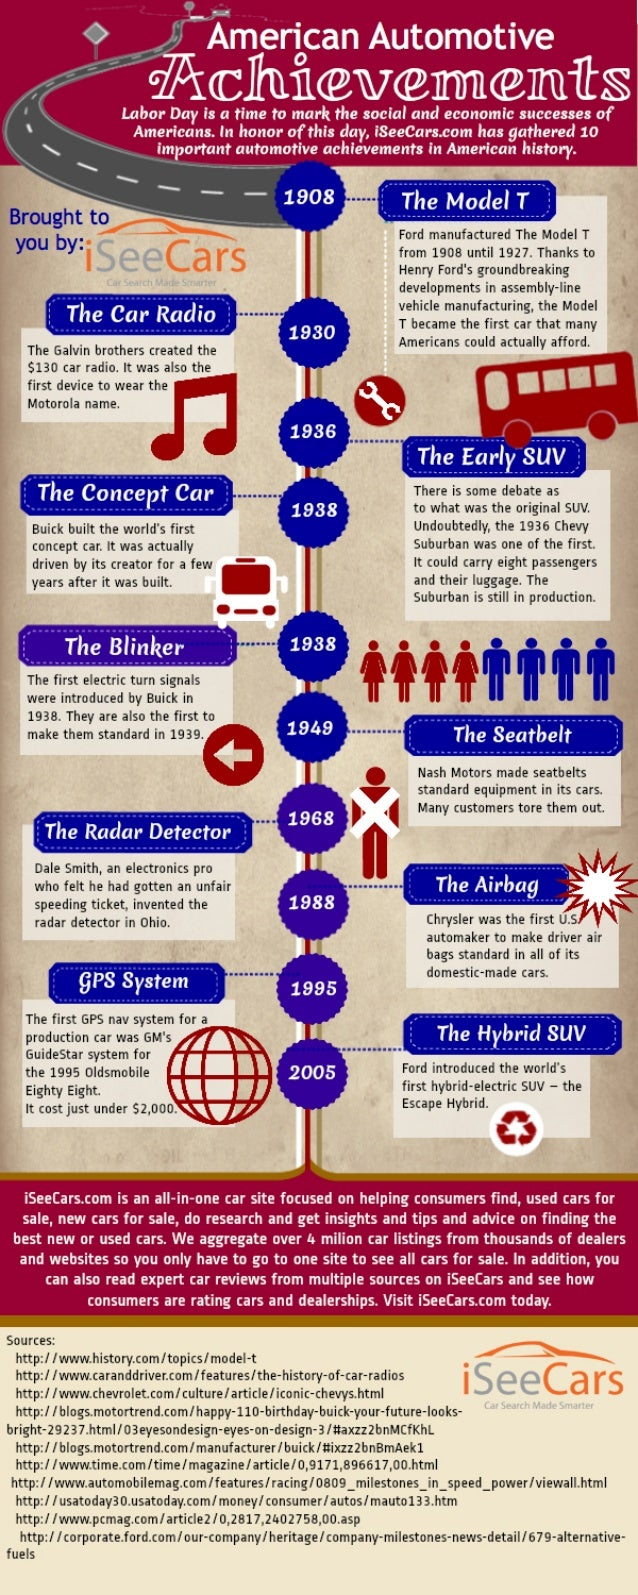 Infographic Details the Milestones Reached in American Automotive History